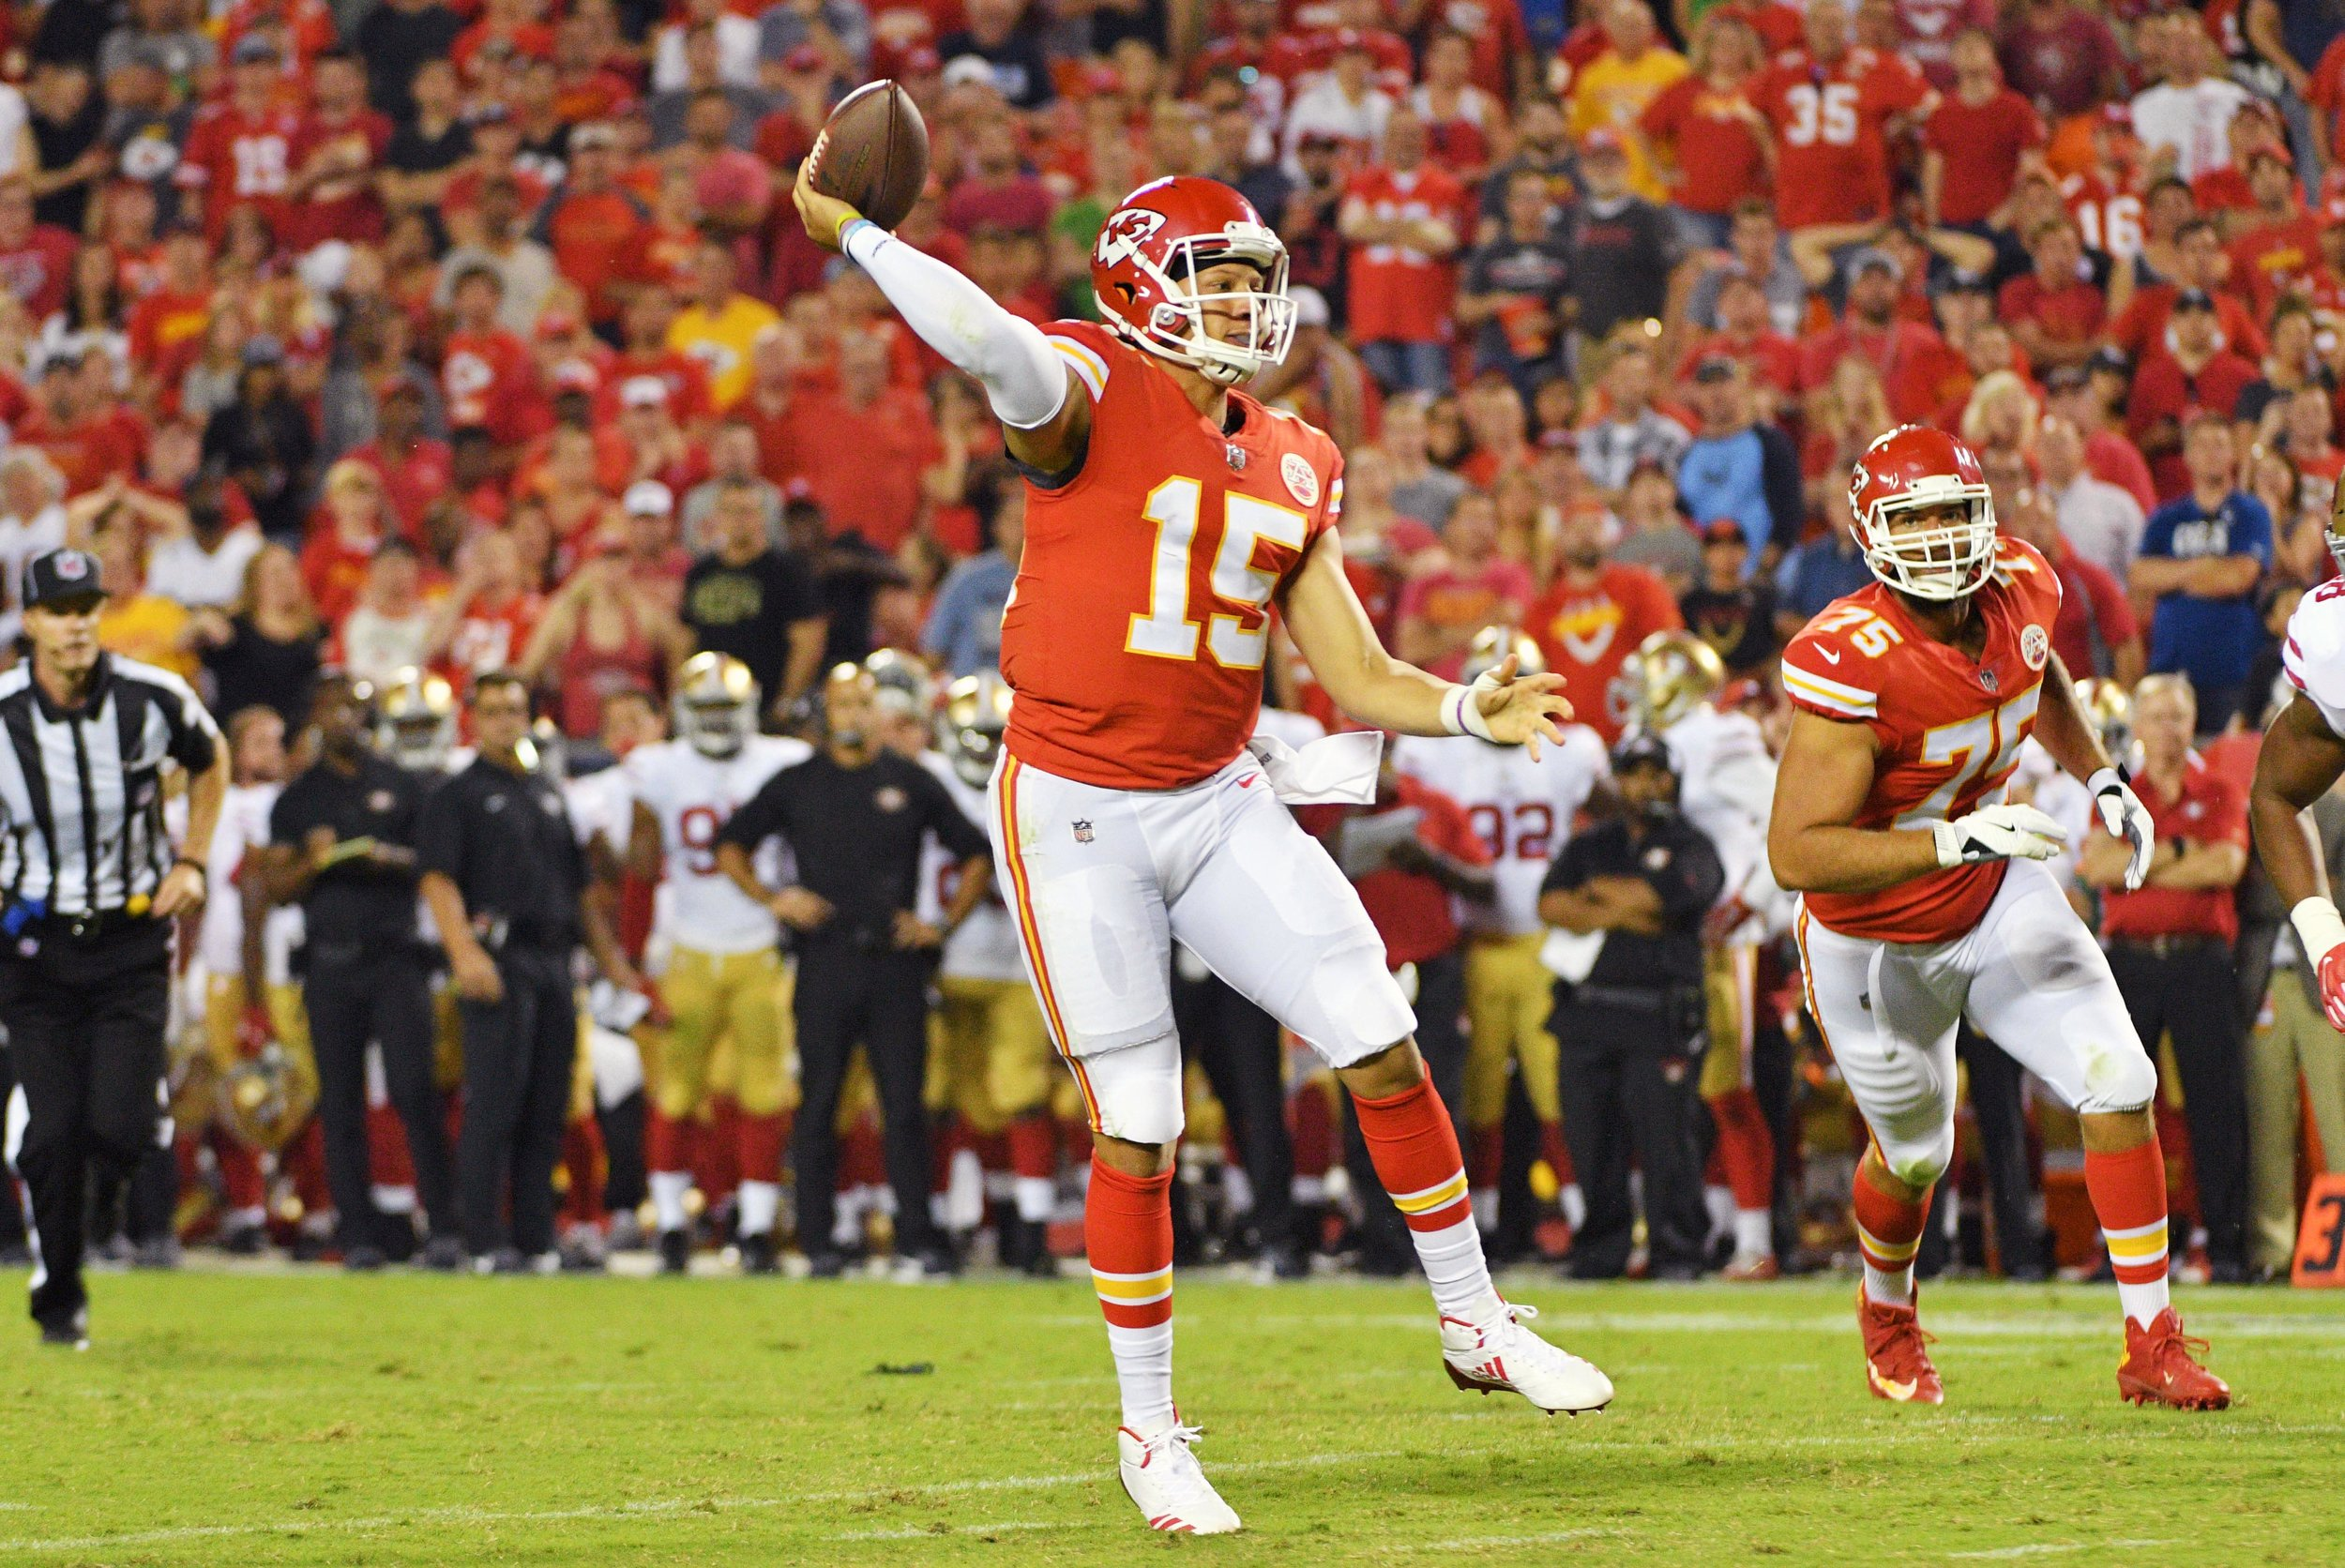 Pat Mahomes was our favorite pick for Offensive Player of the Year. He finished the season scoring the most fantasy points - EVER.